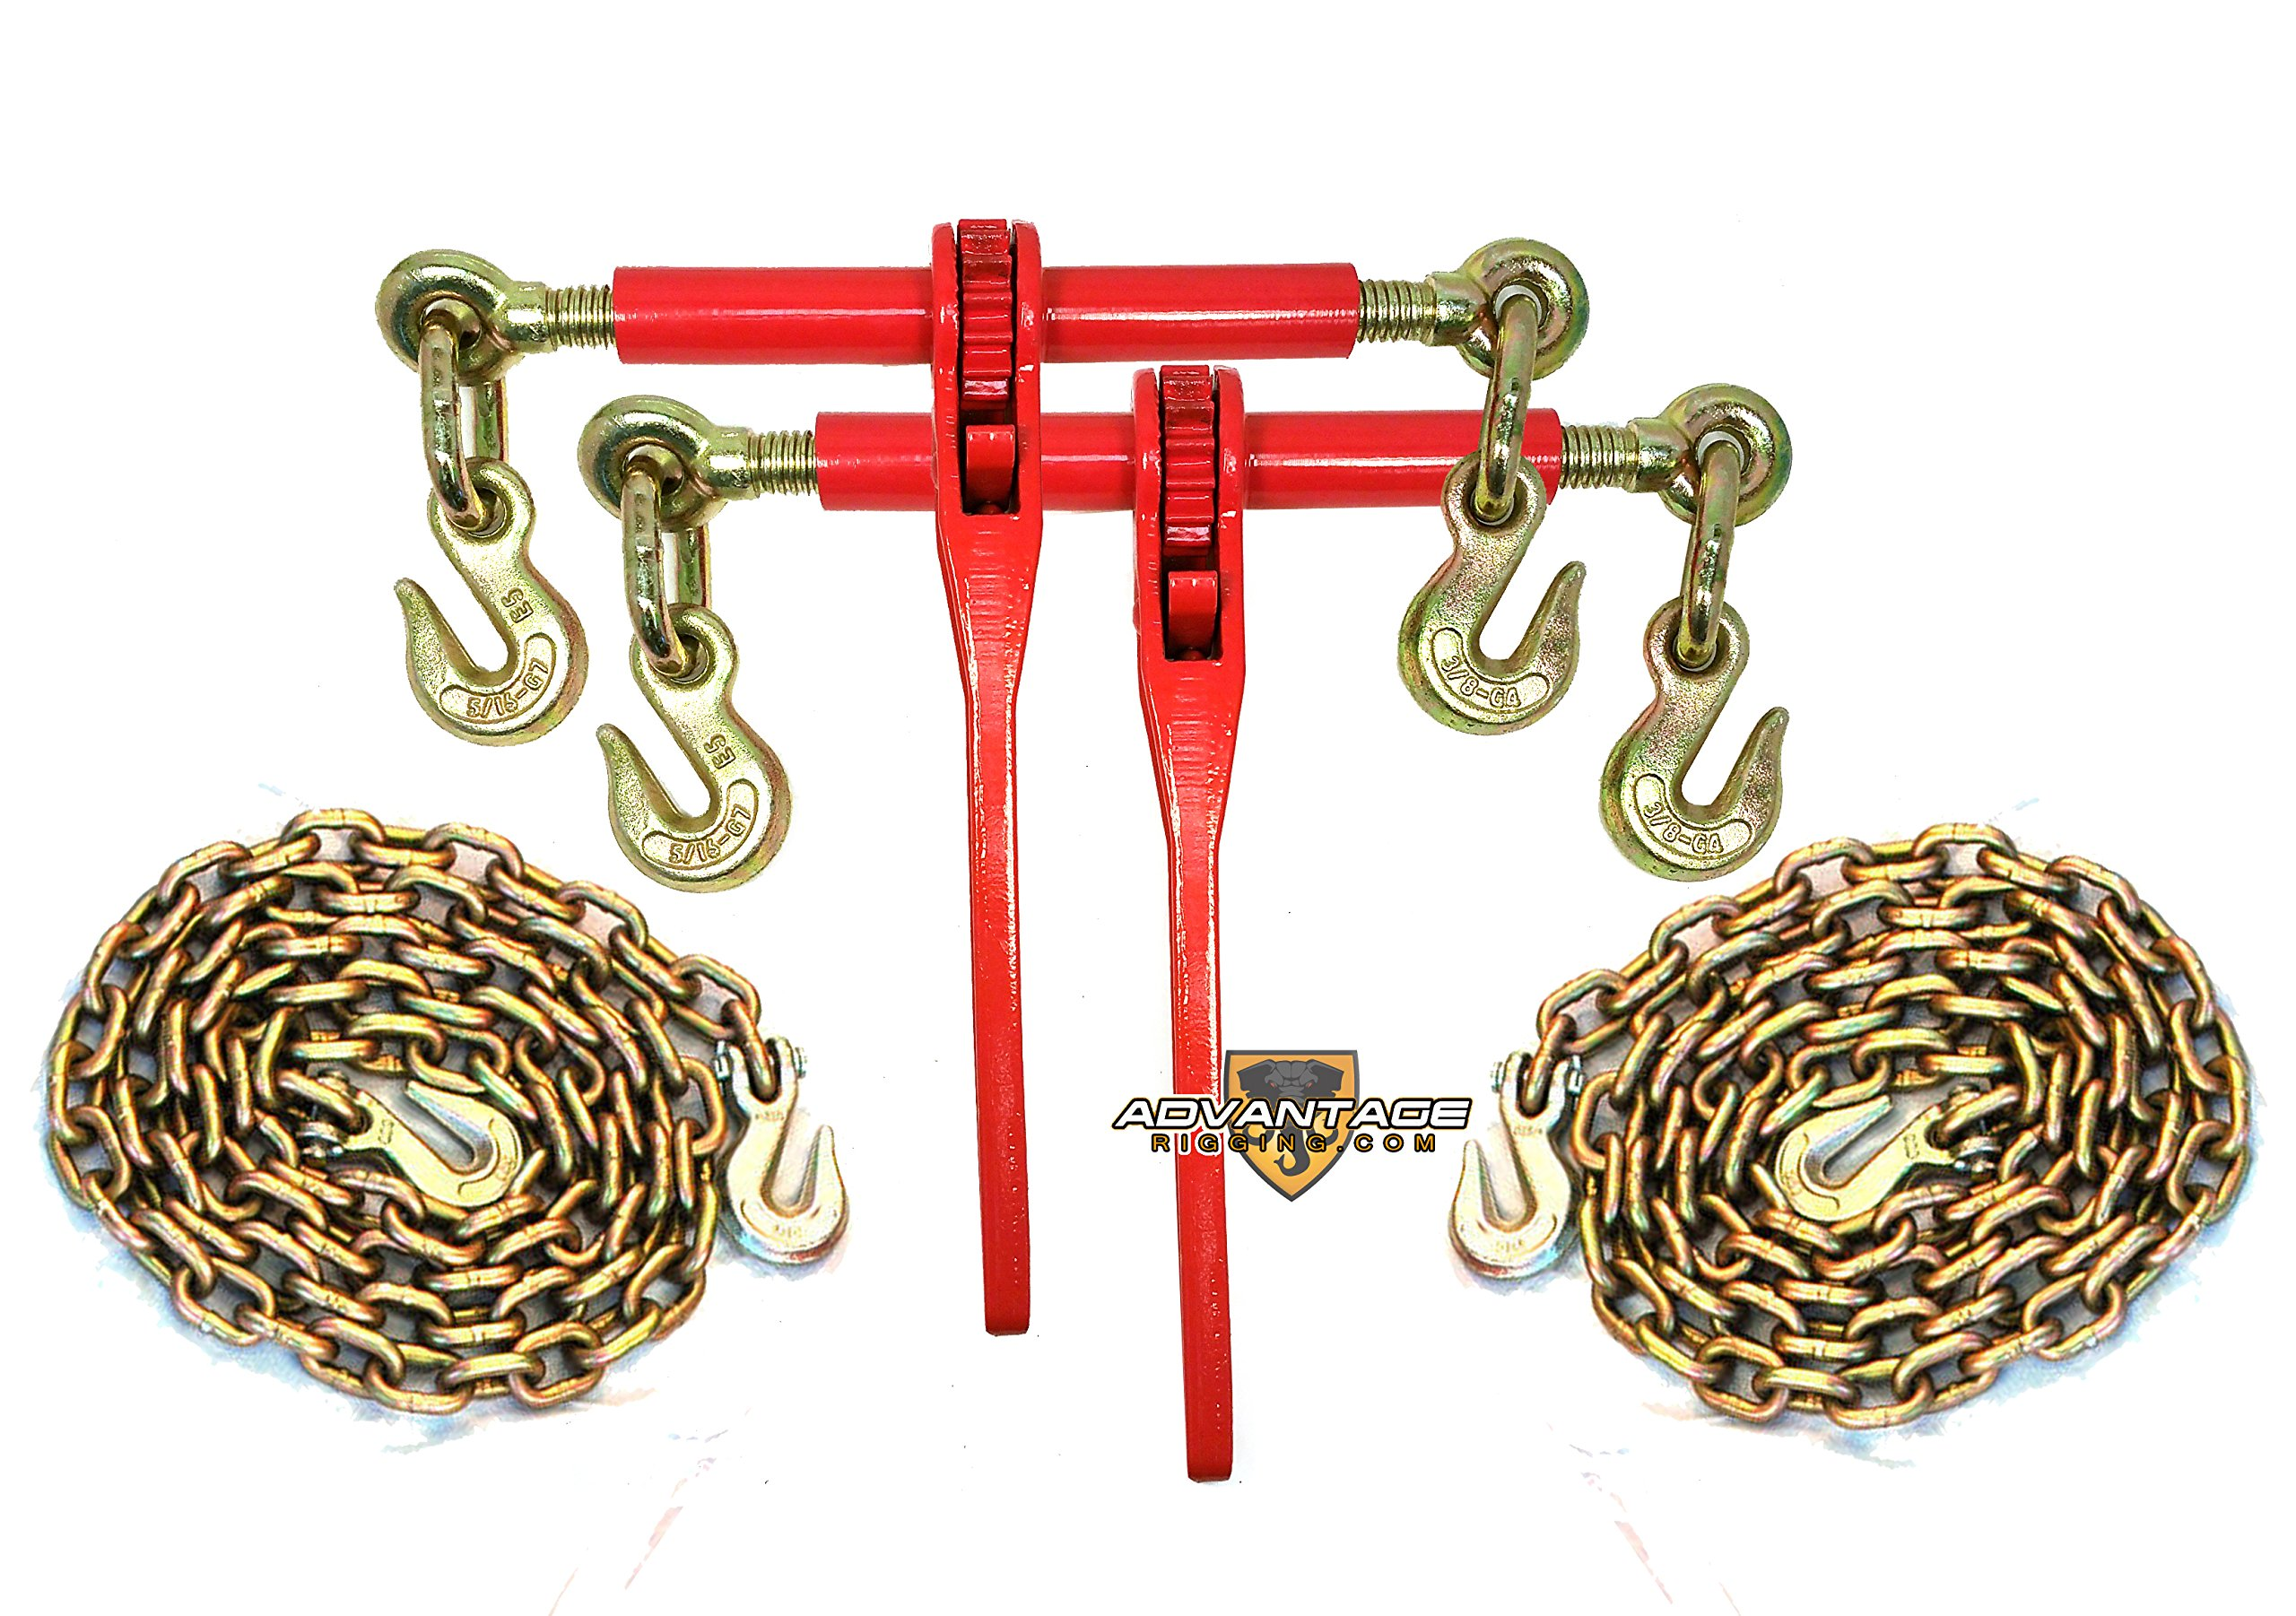 5/16'' Transport Hauling Load Package - (2) Ratchet Binders - (2) 10' Foot Chains